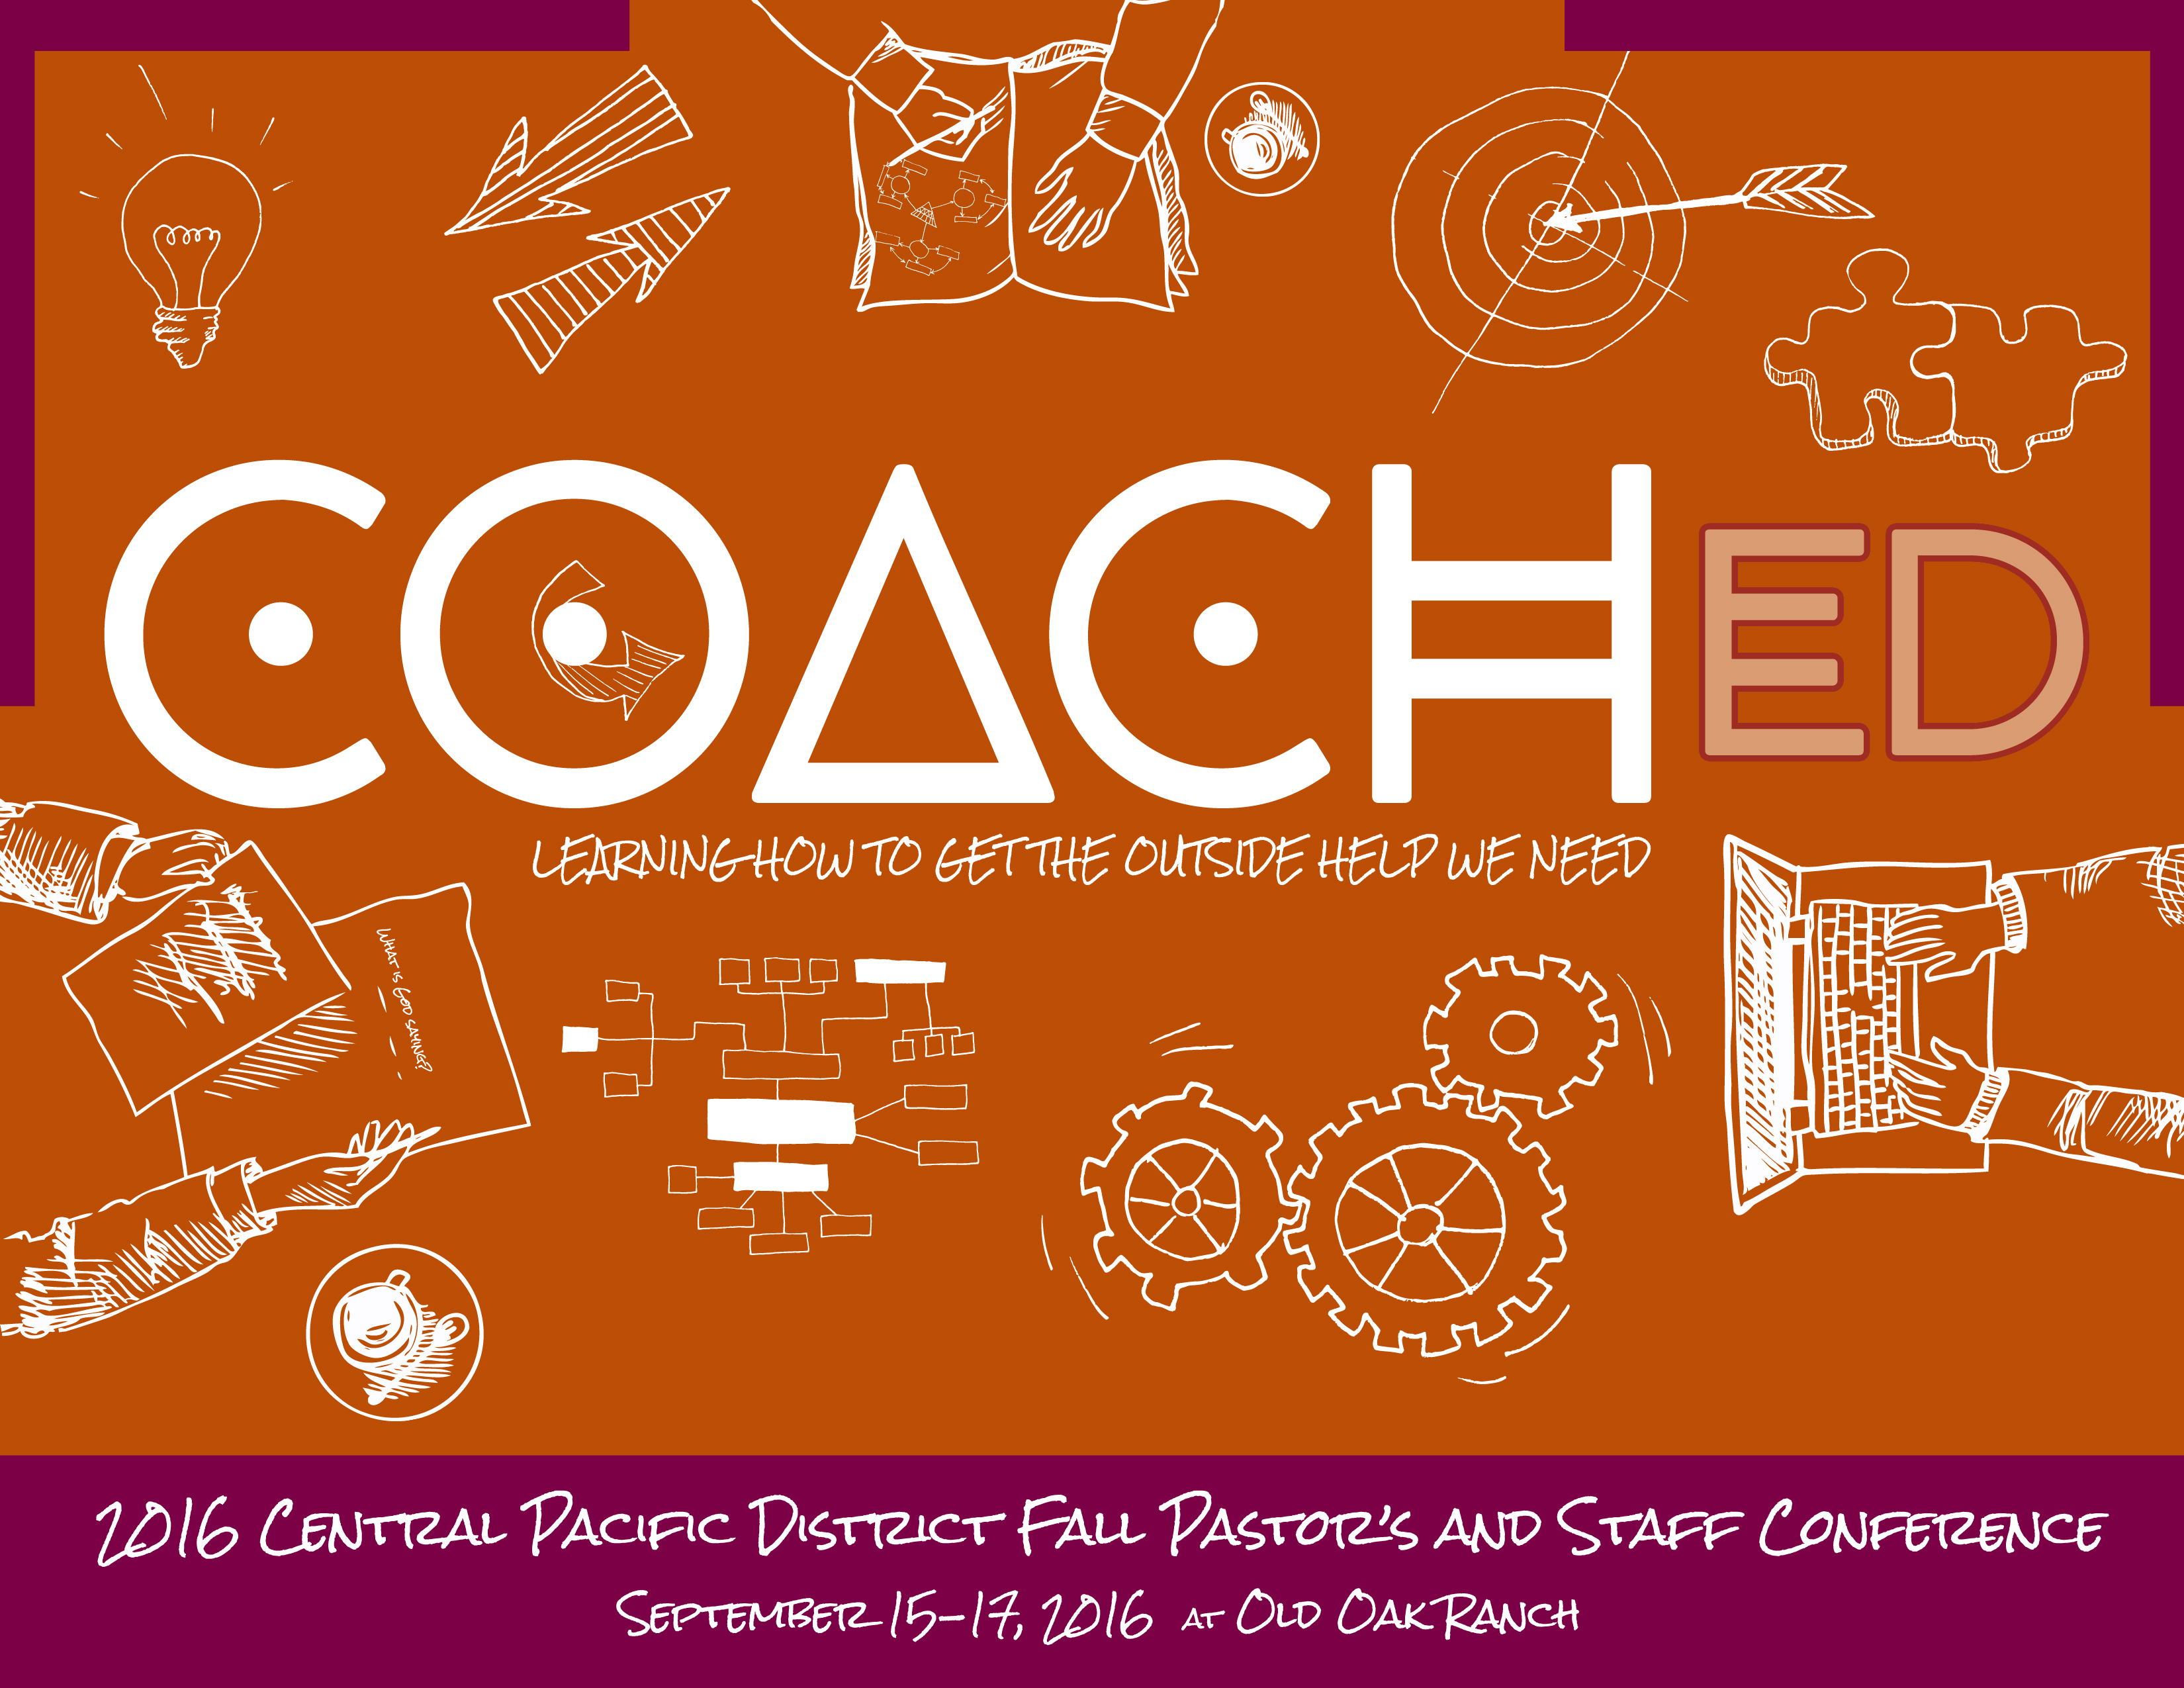 Coached letter size